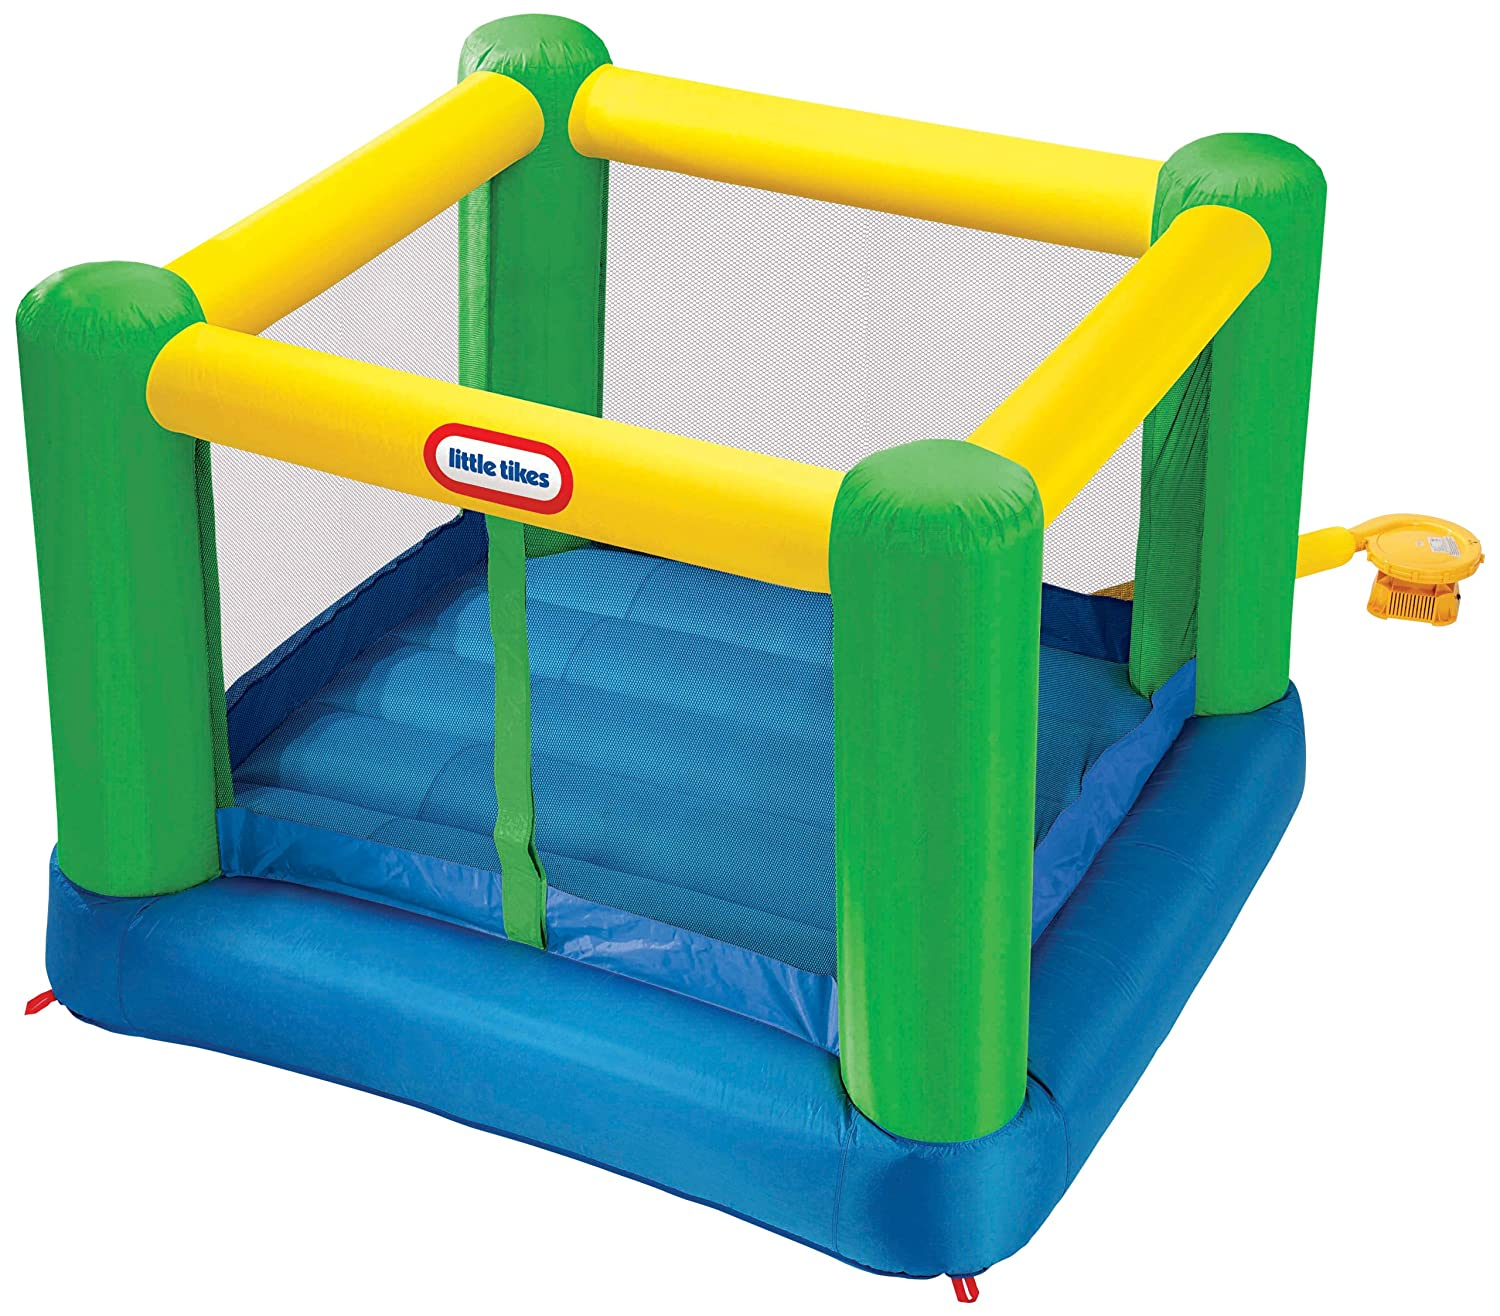 34 results for bounce house little tikes Save bounce house little tikes to get e-mail alerts and updates on your eBay Feed. Unfollow bounce house little tikes to stop getting updates on your eBay Feed.